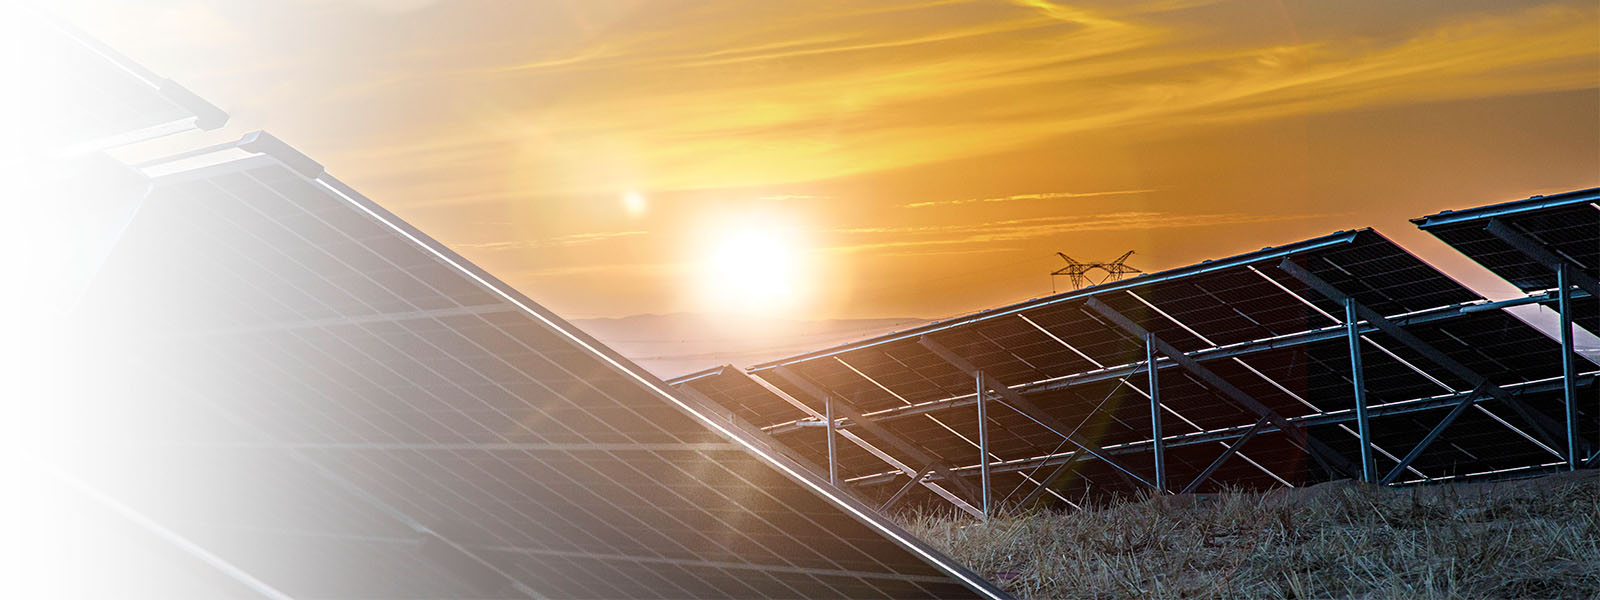 SOLAR PLANTSPROJECT DEVELOPMENT